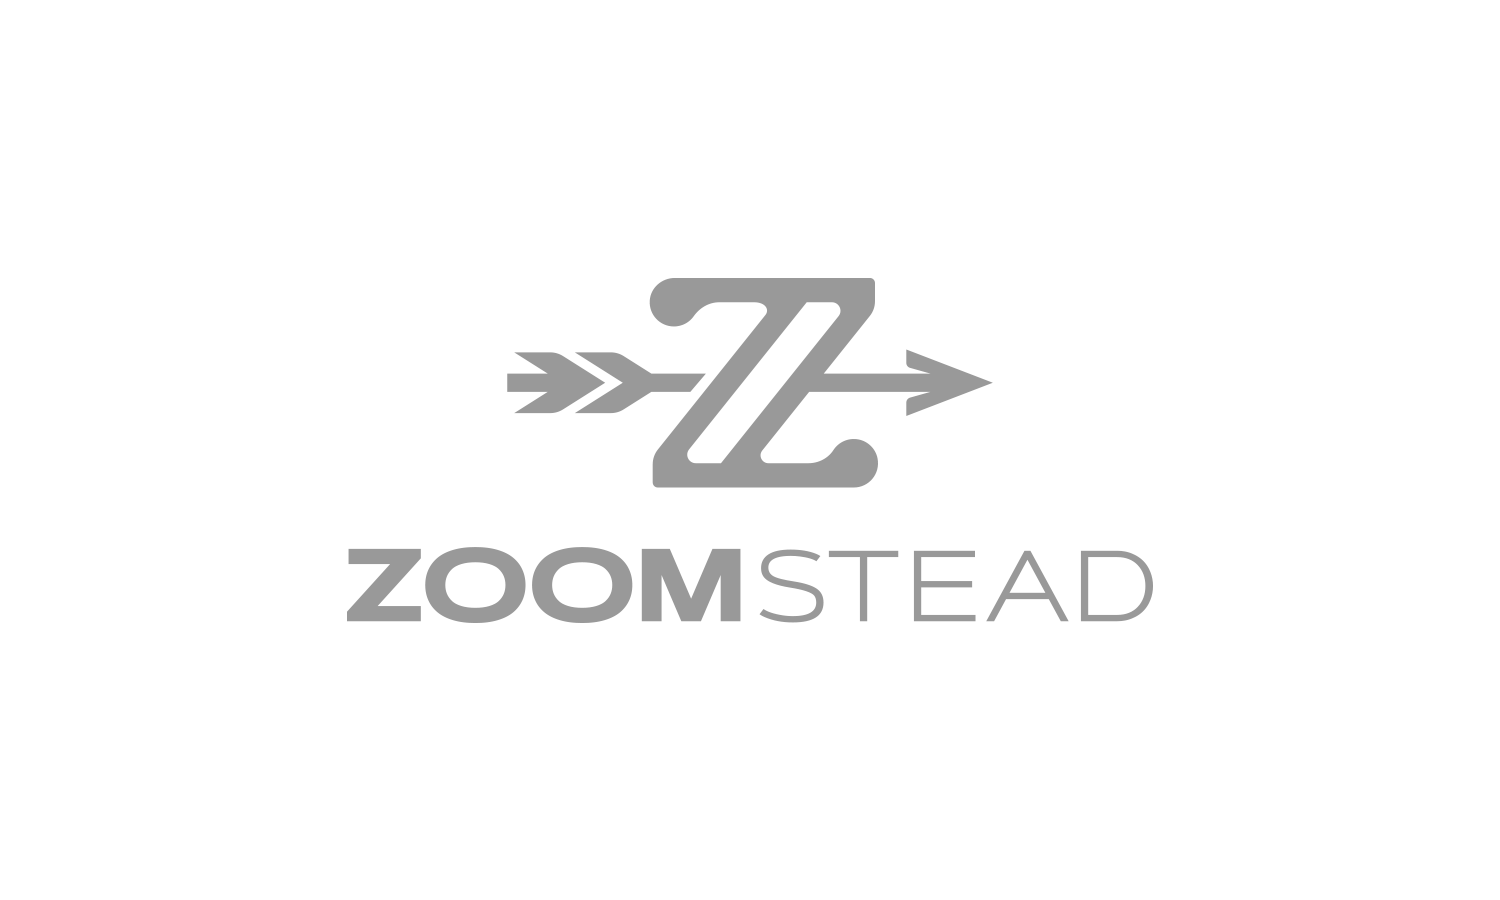 zoomstead-logo.png